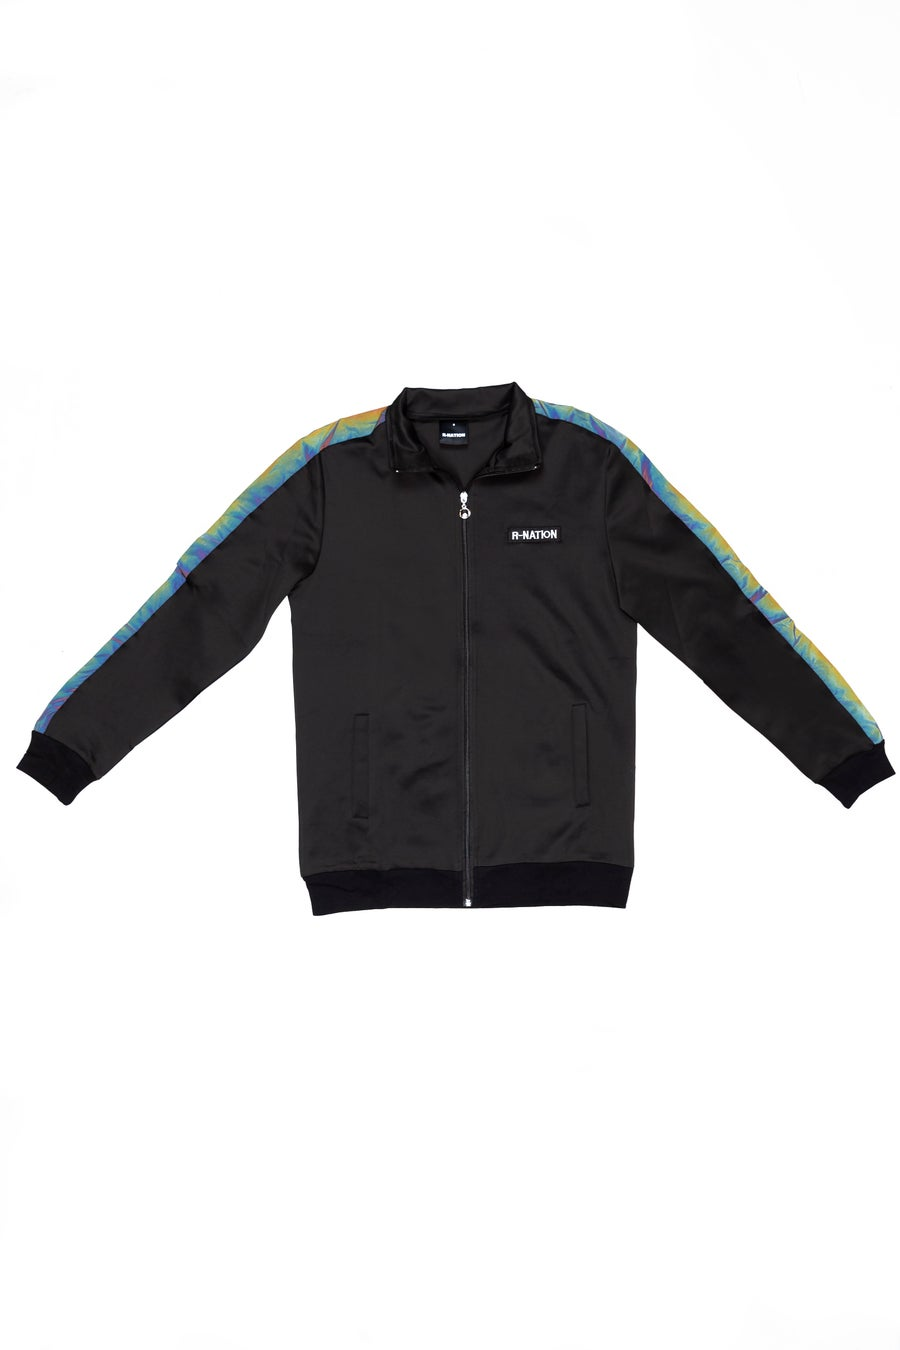 Image of R-NATION TRACKSUIT JACKET